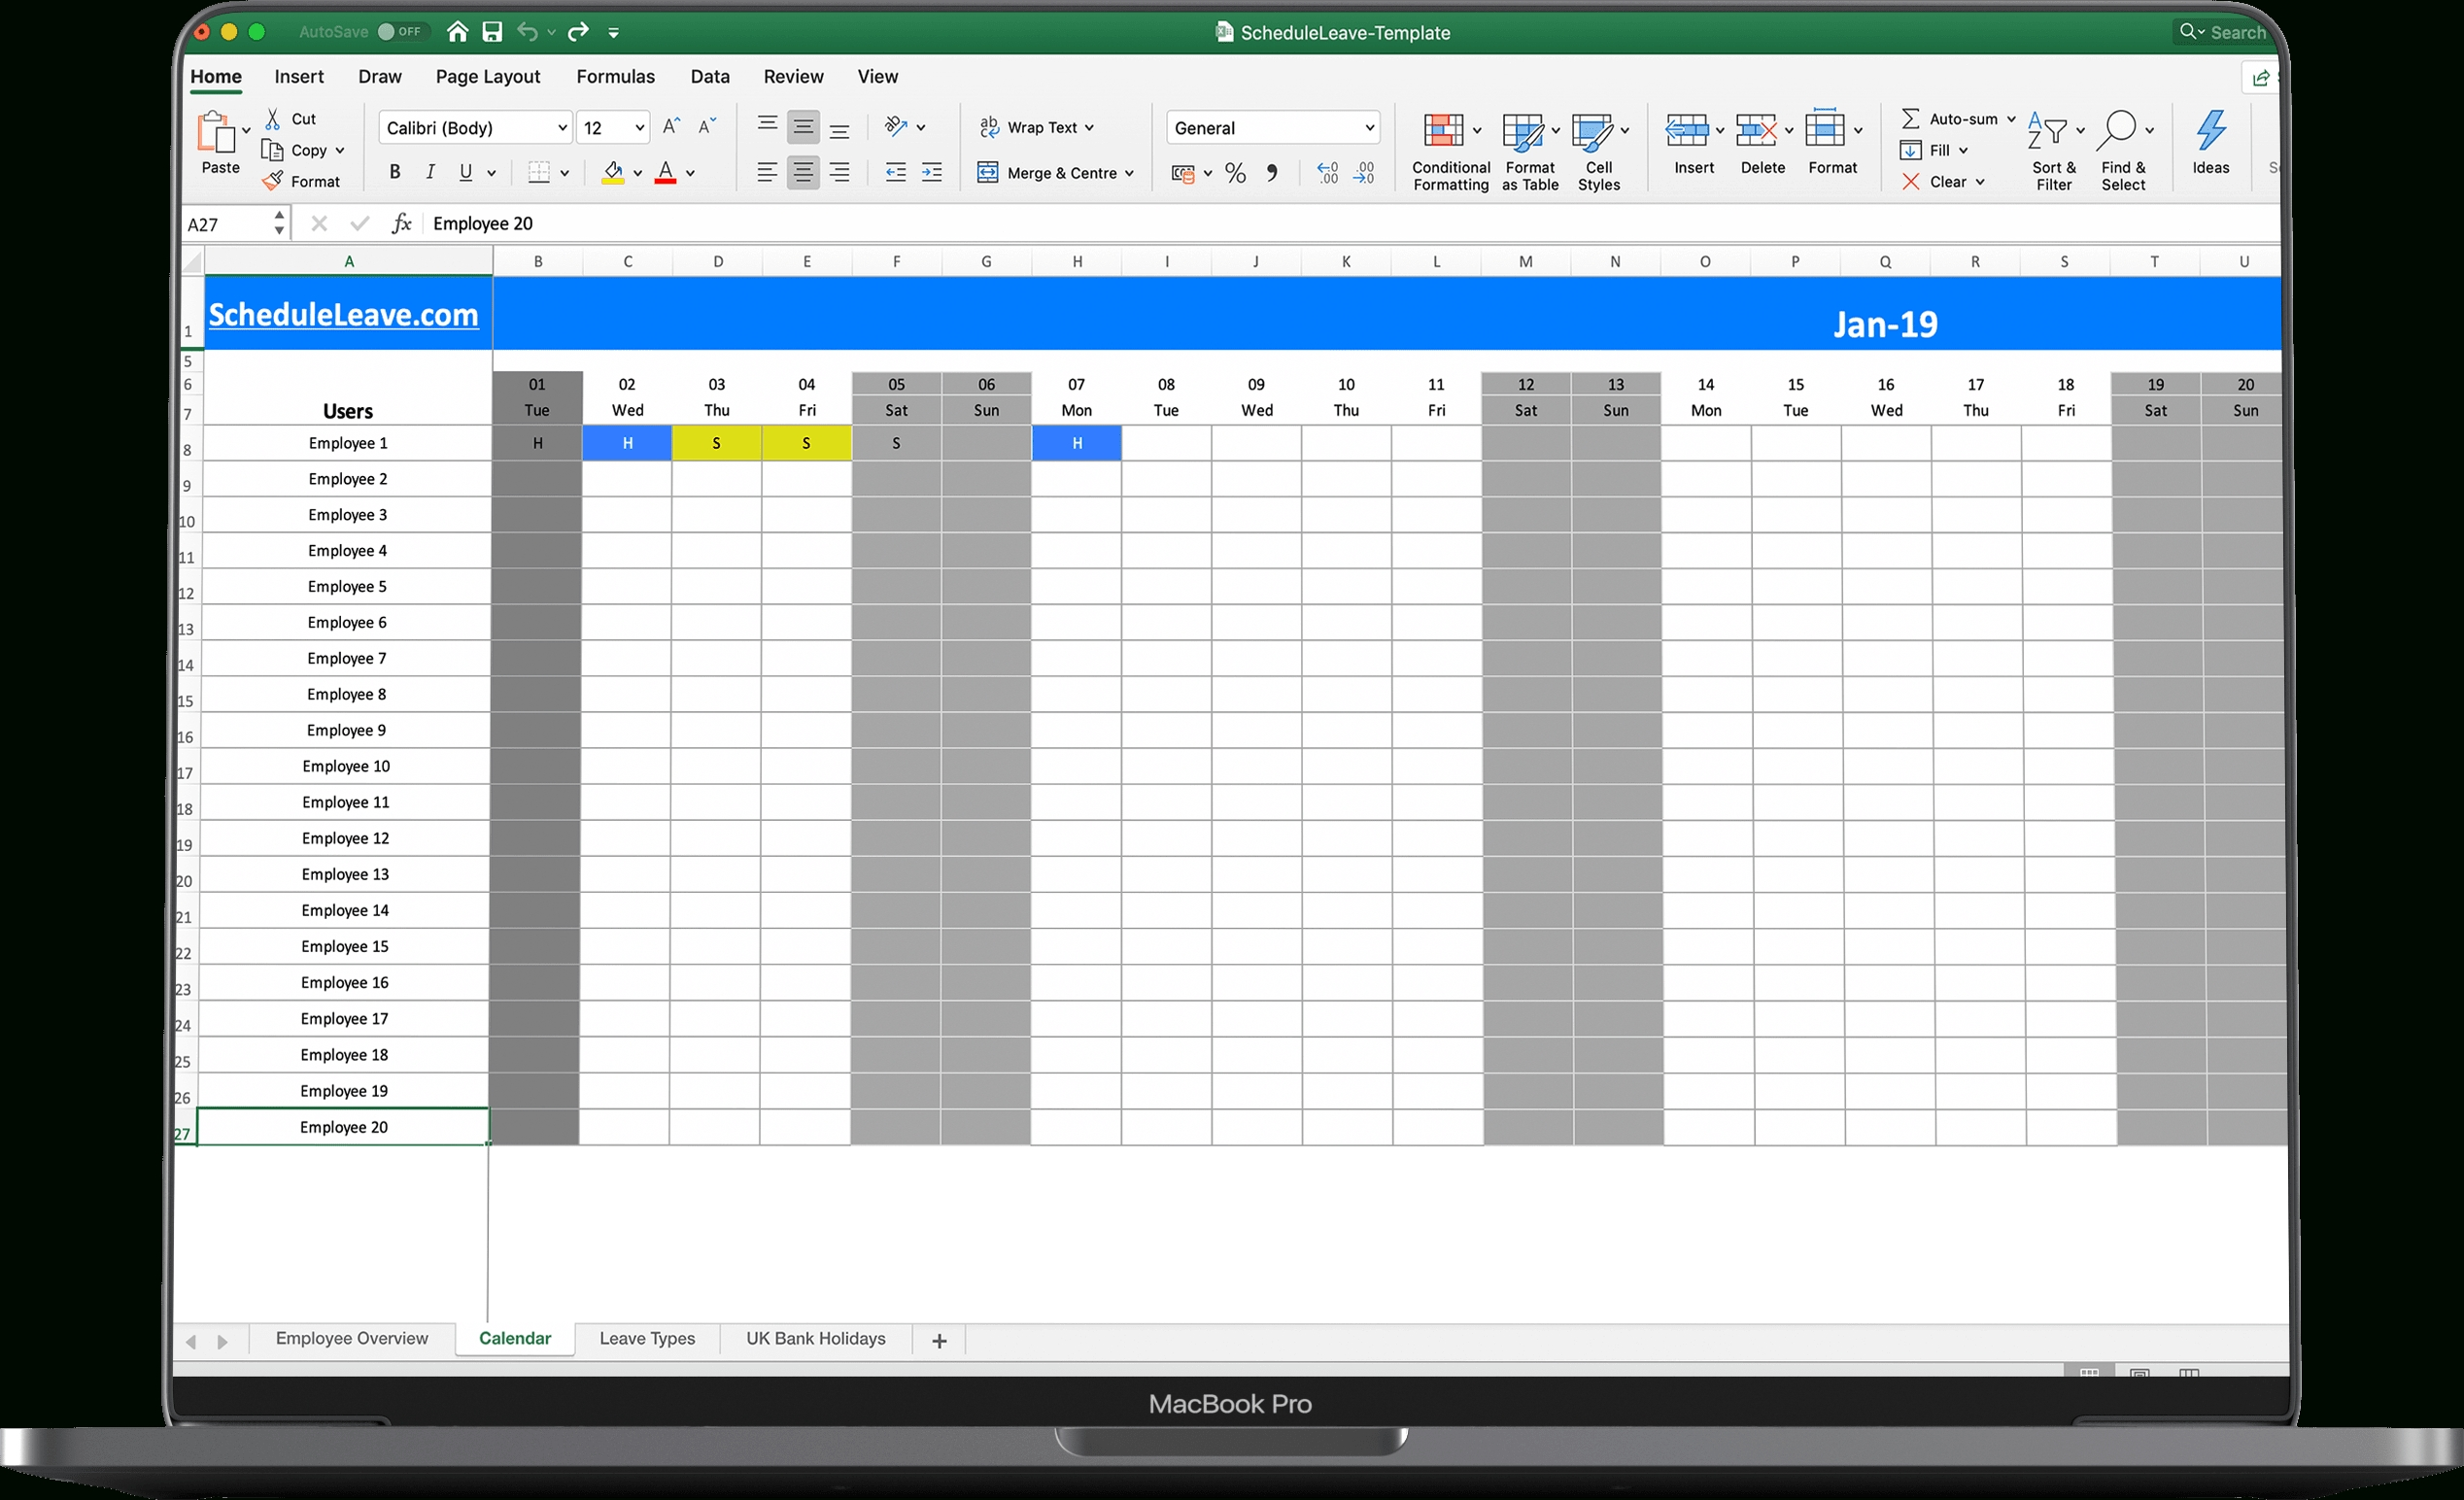 Free Excel Leave Calendar 2021 Spreadsheet Template-Excel Vacation Calender 2021